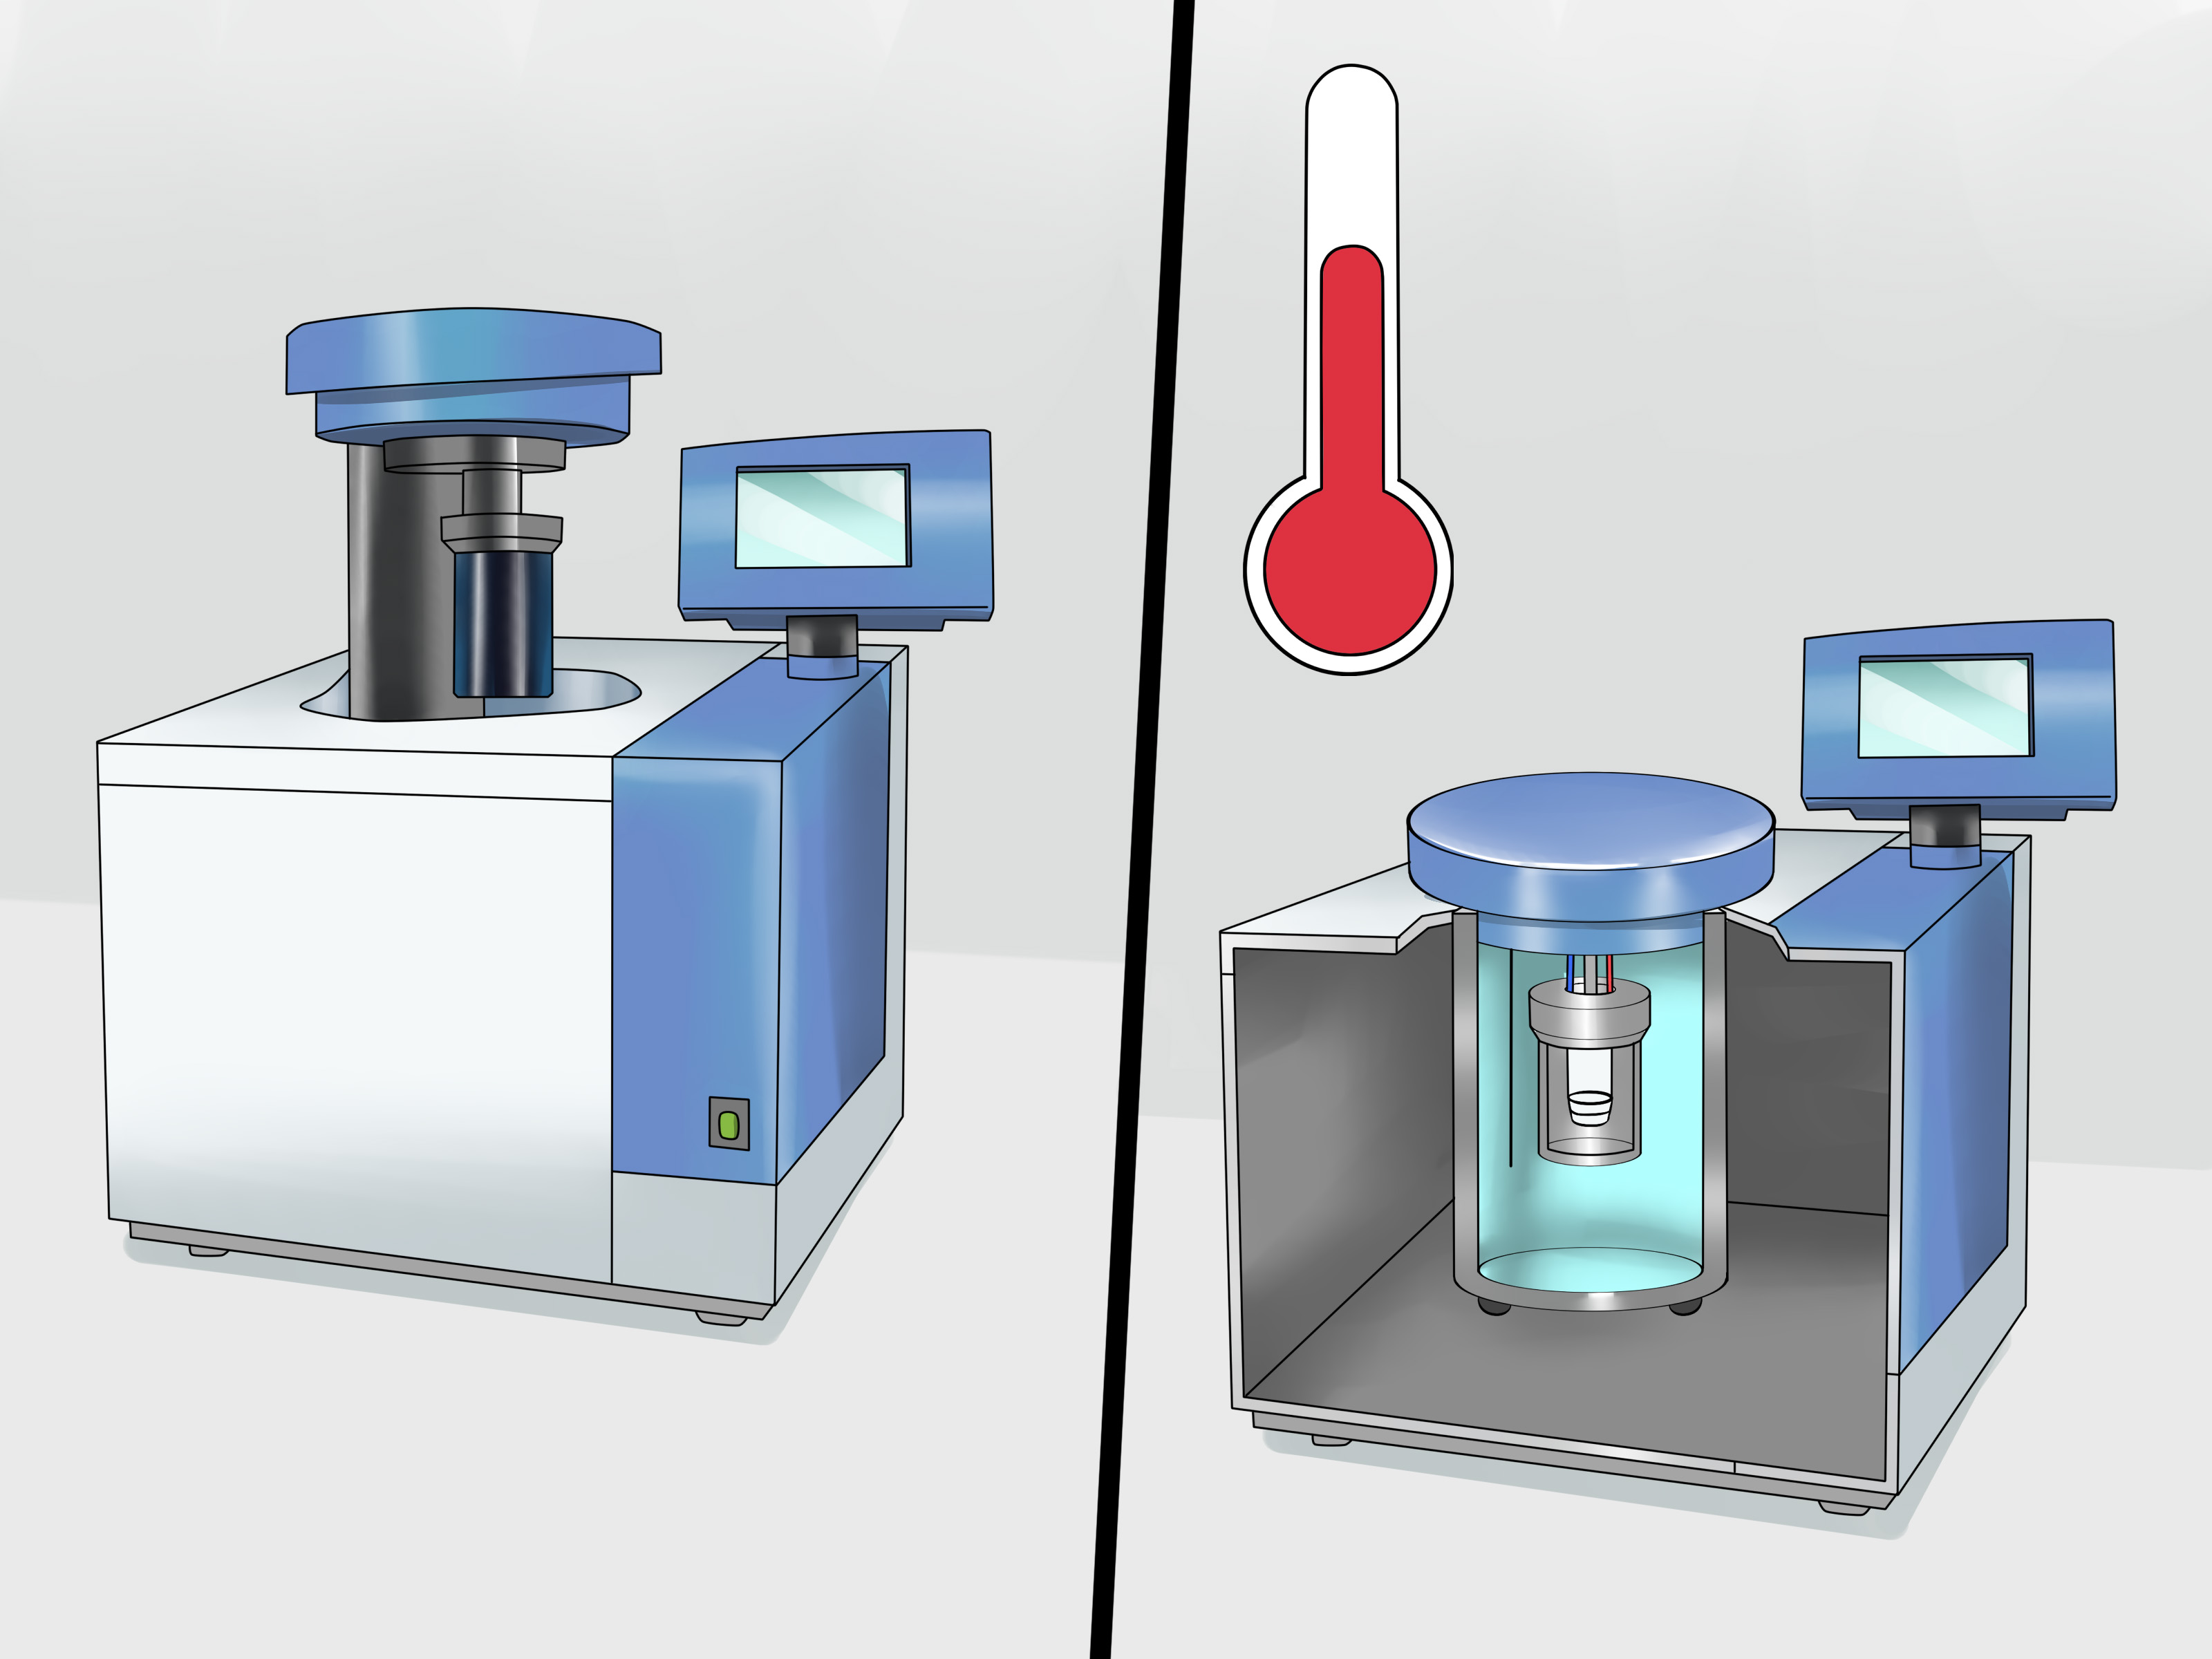 How To Measure Thermal Energy Released From A Flame 10 Steps